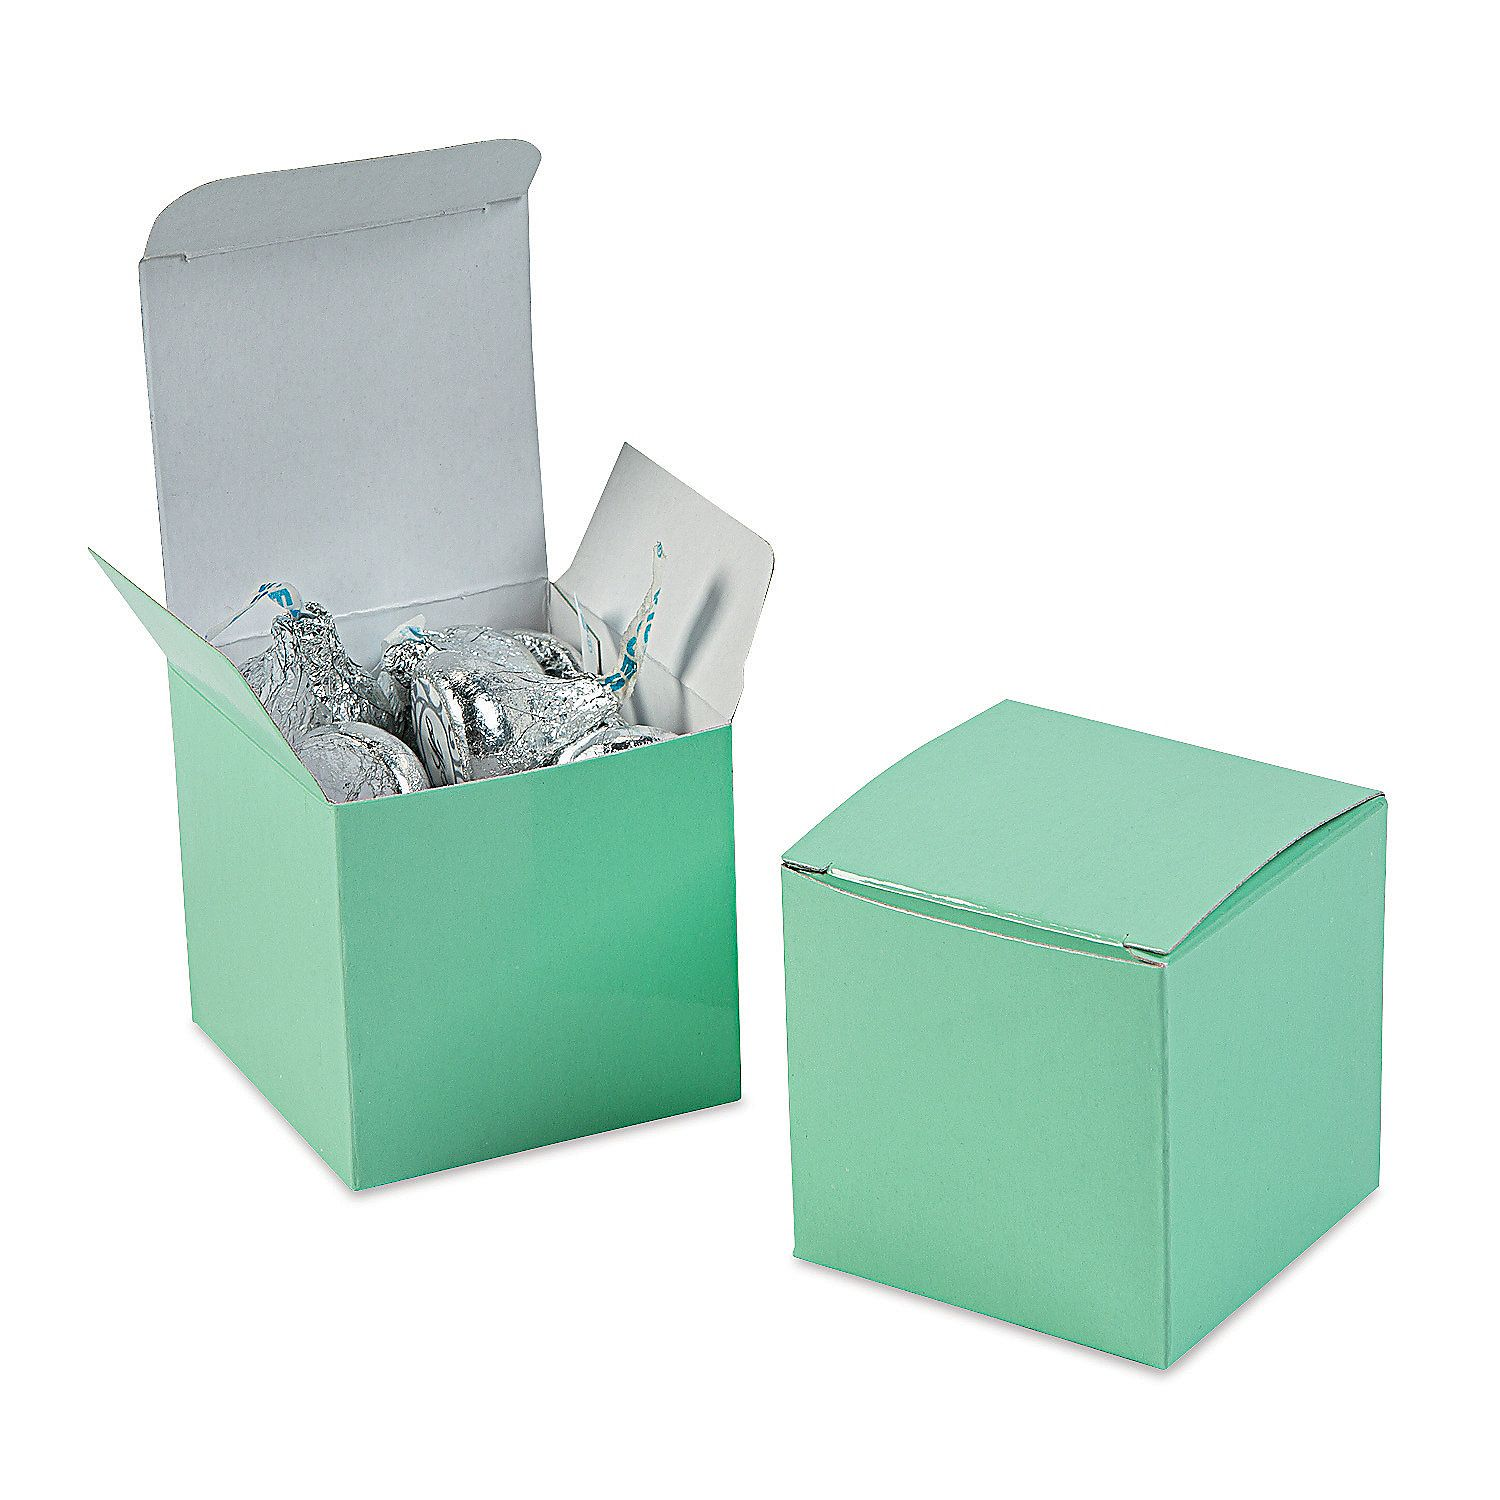 Mini Favor Boxes | Favors, Bridal showers and Wedding